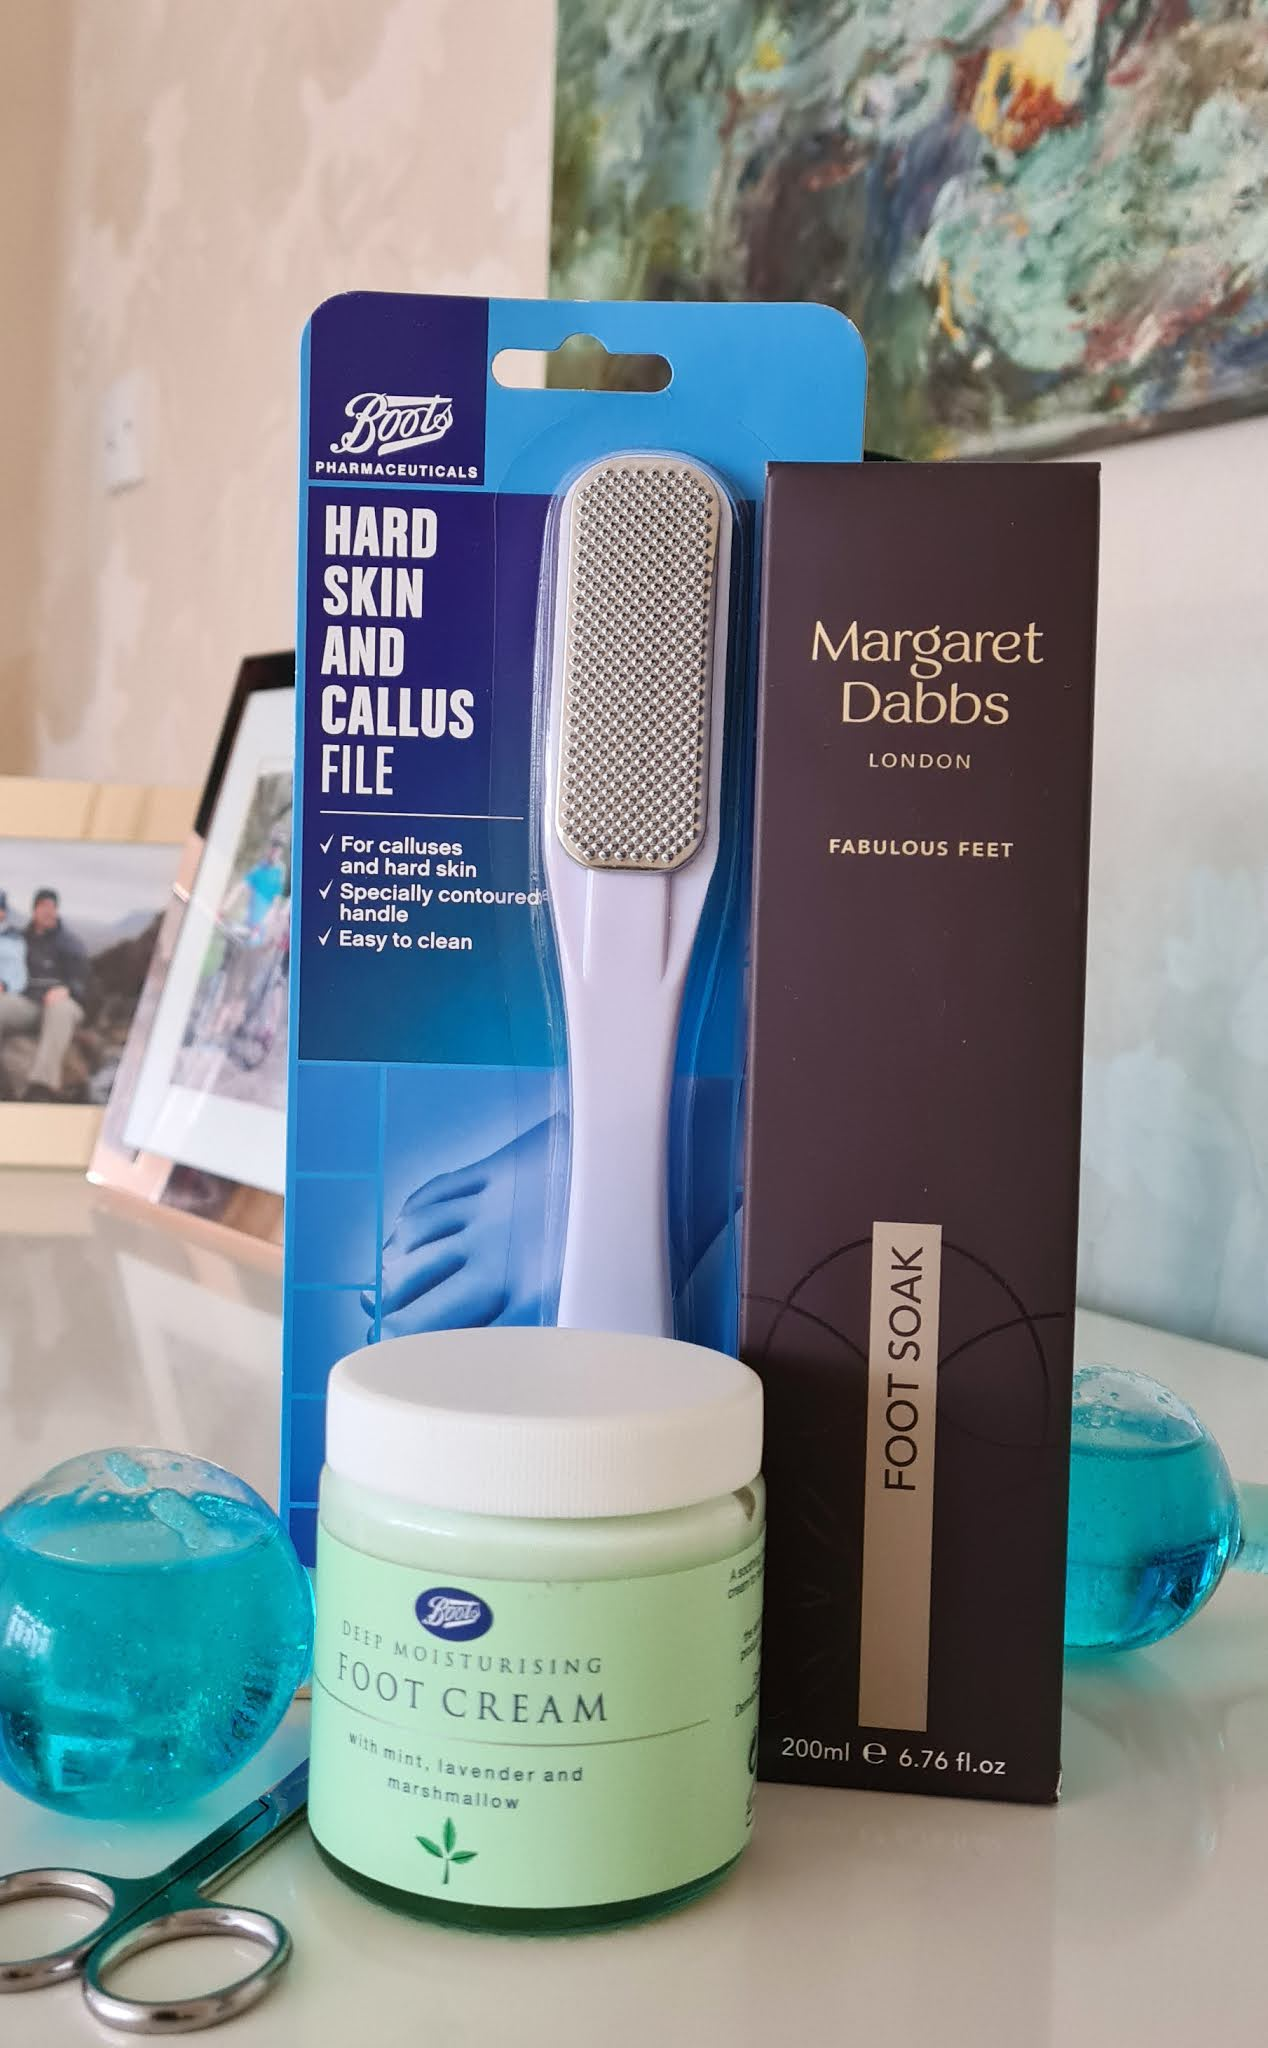 Products for a home pedicure from Boots and Margaret Dabbs